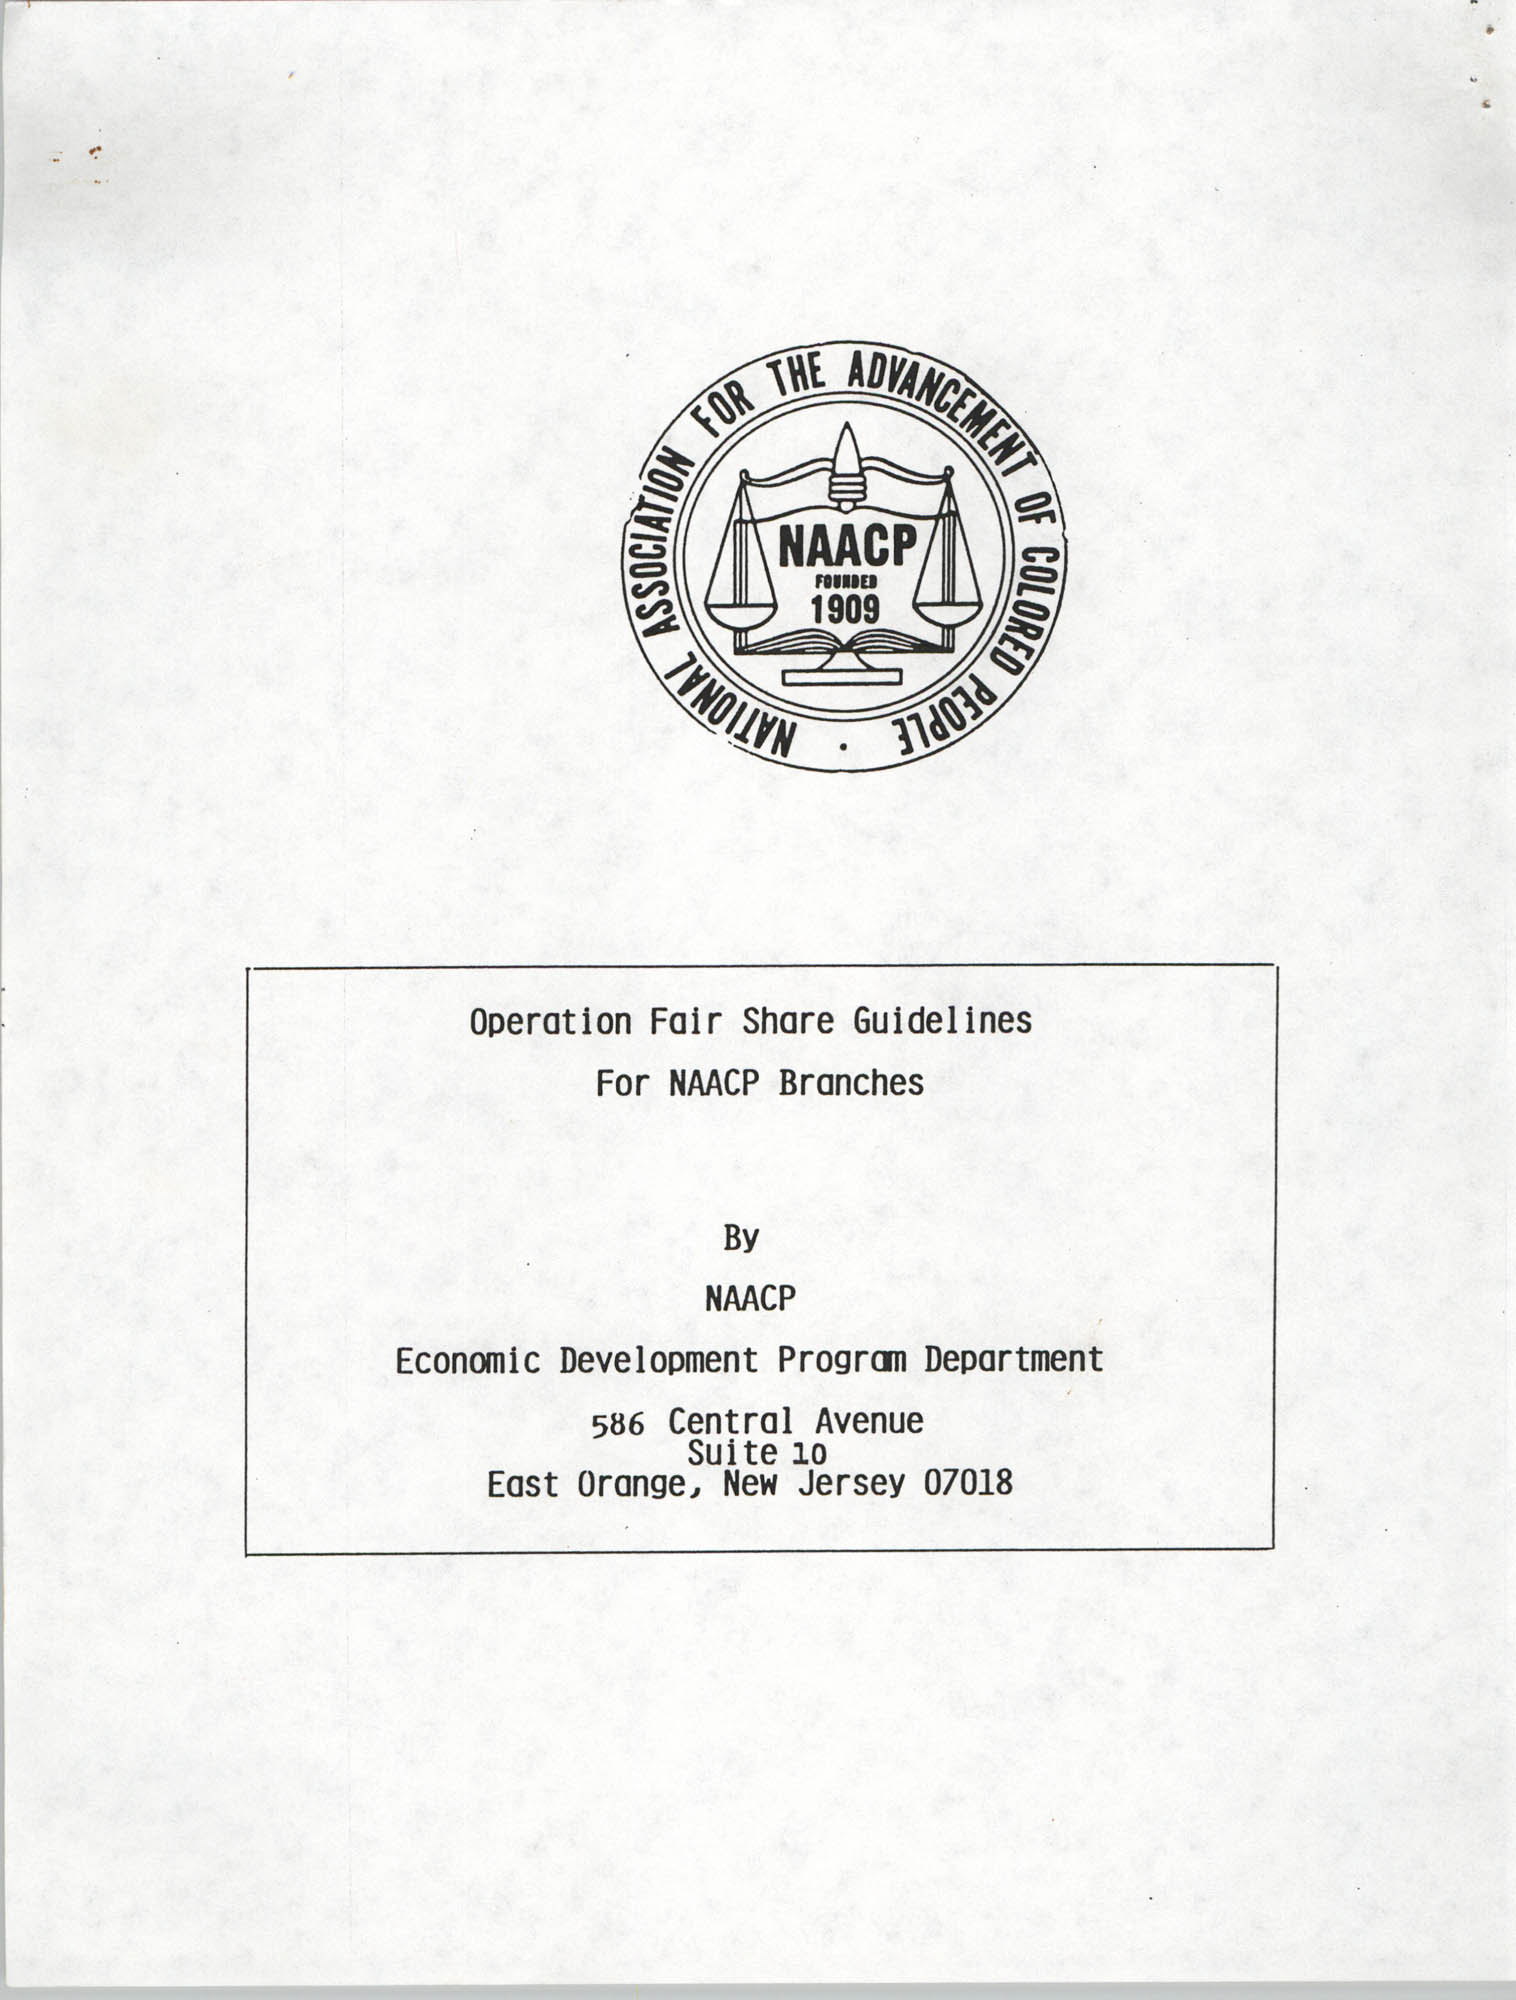 Operation Fair Share Guidelines for NAACP Branches